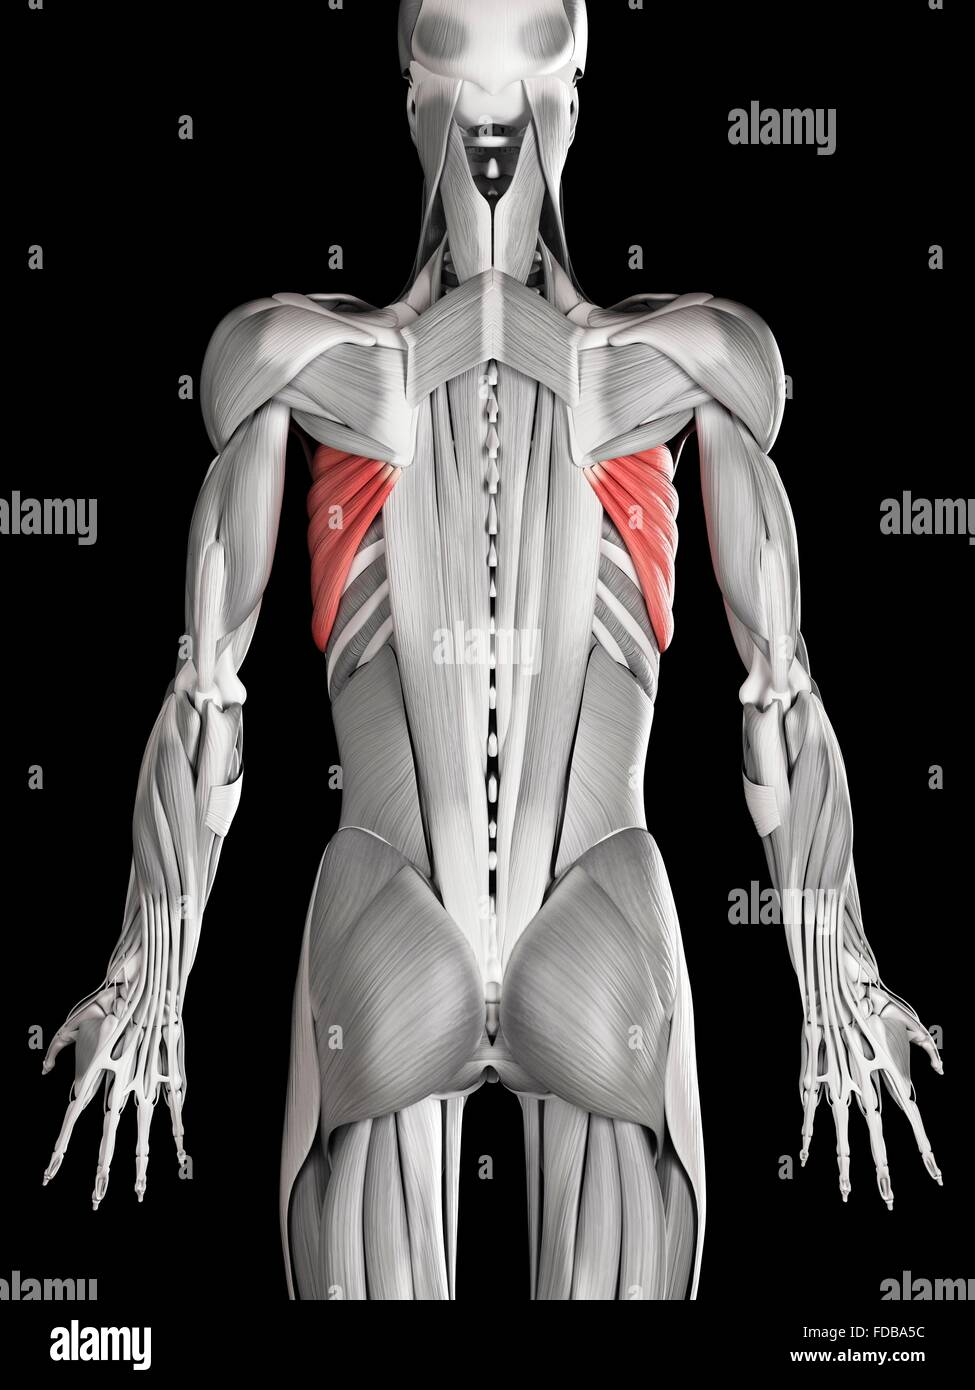 Anterior View Of The Muscles Imágenes De Stock & Anterior View Of ...